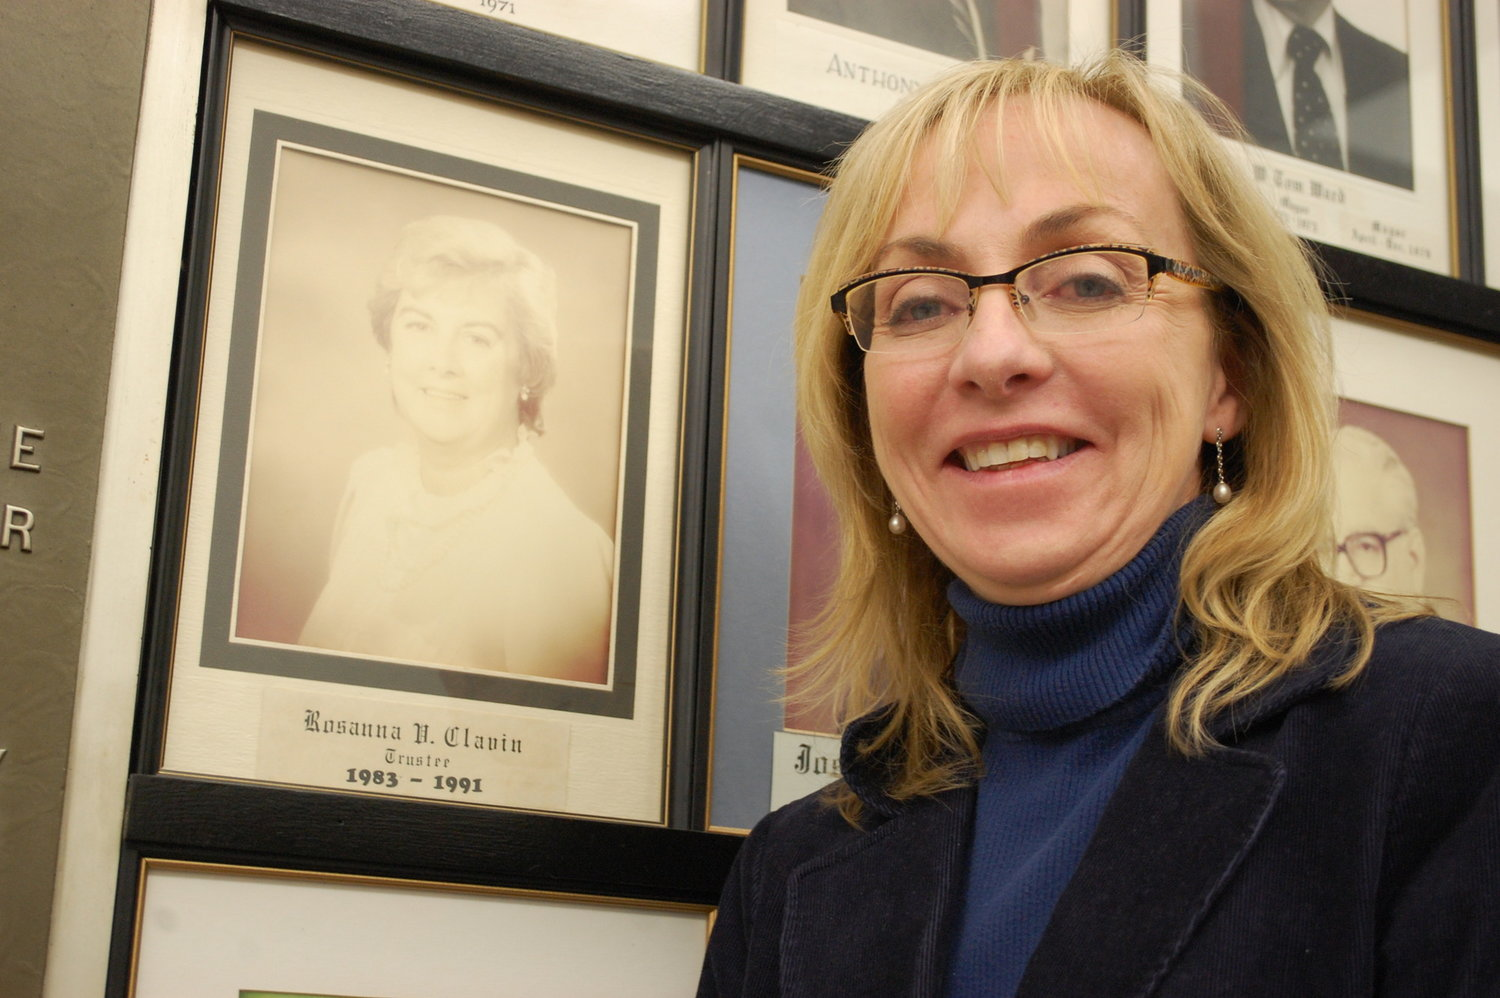 Virginia Clavin-Higgins followed in her mother's footsteps, becoming village trustee herself in 2011.